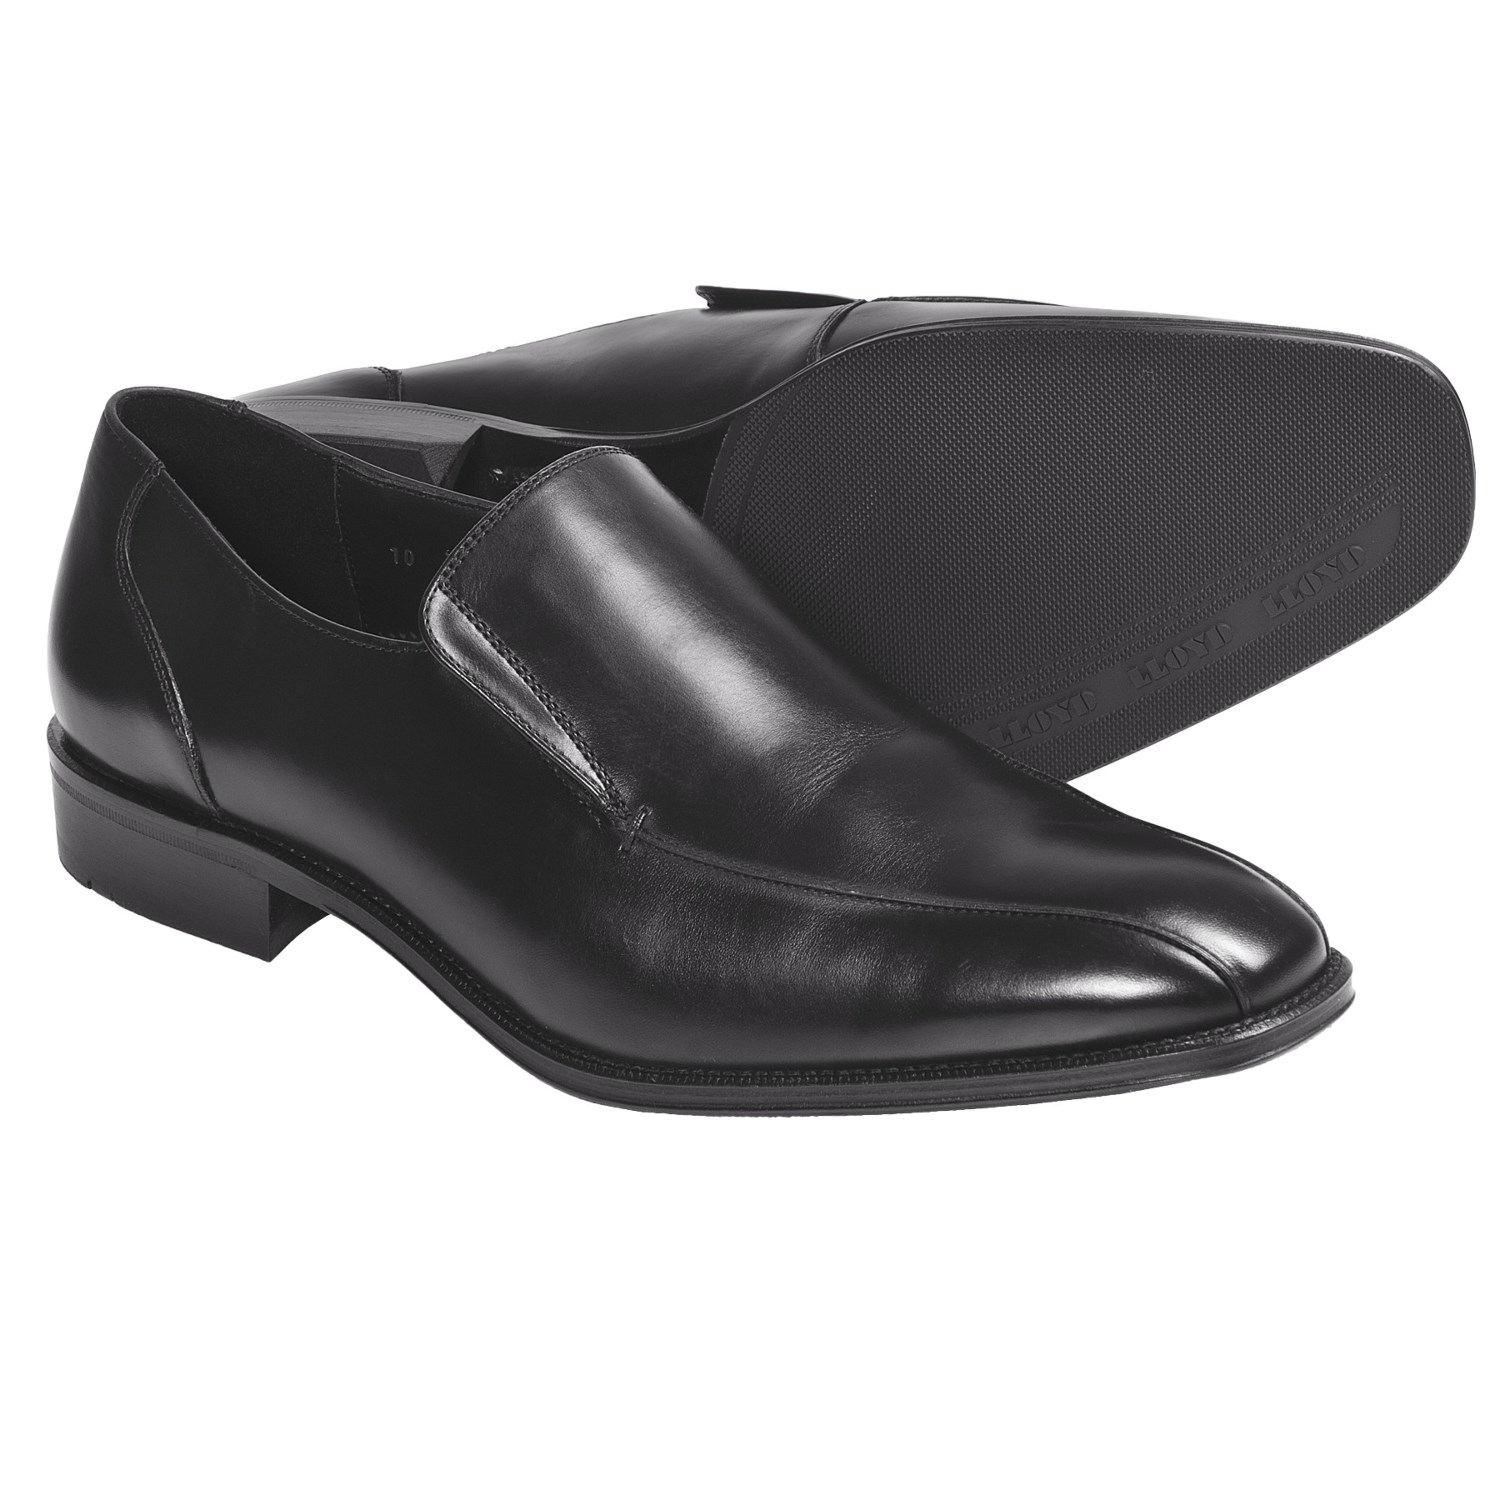 Lloyd Shoes Kilroy Dress Shoes - Calfskin Leather, Slip-Ons (For Men